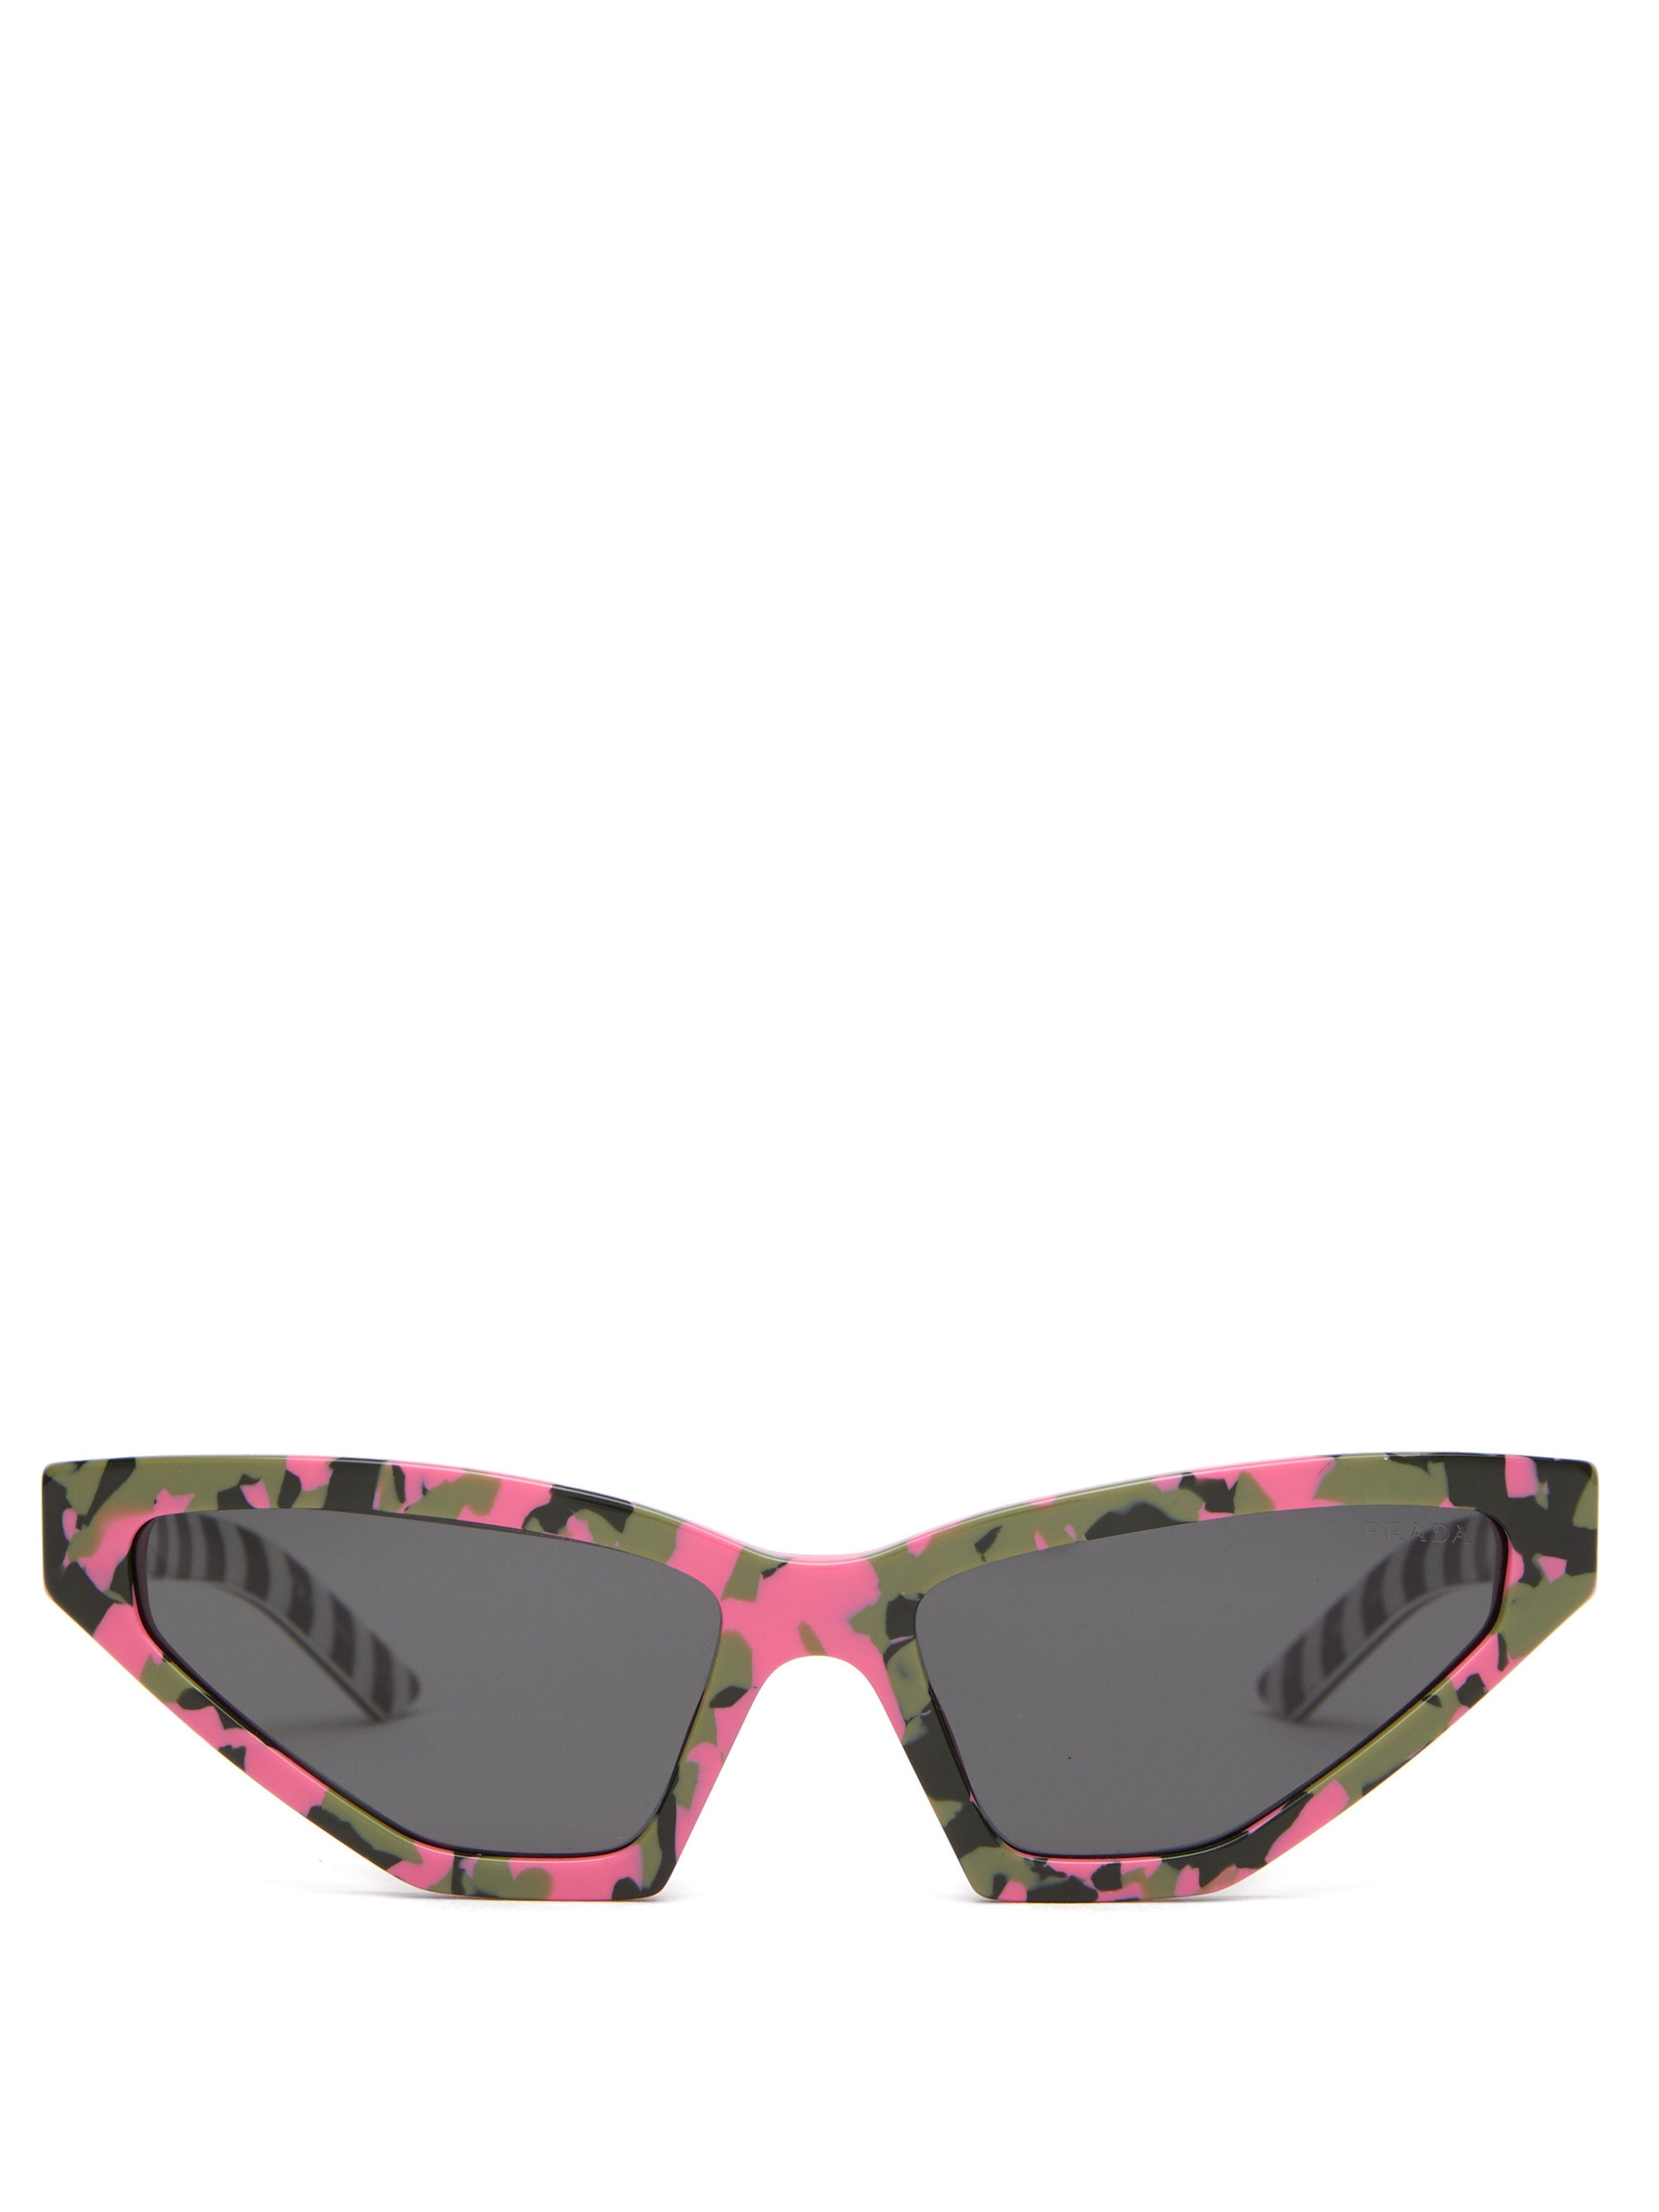 5852fcc89ac Prada Disguise Cat Eye Camouflage Acetate Sunglasses in Pink - Lyst